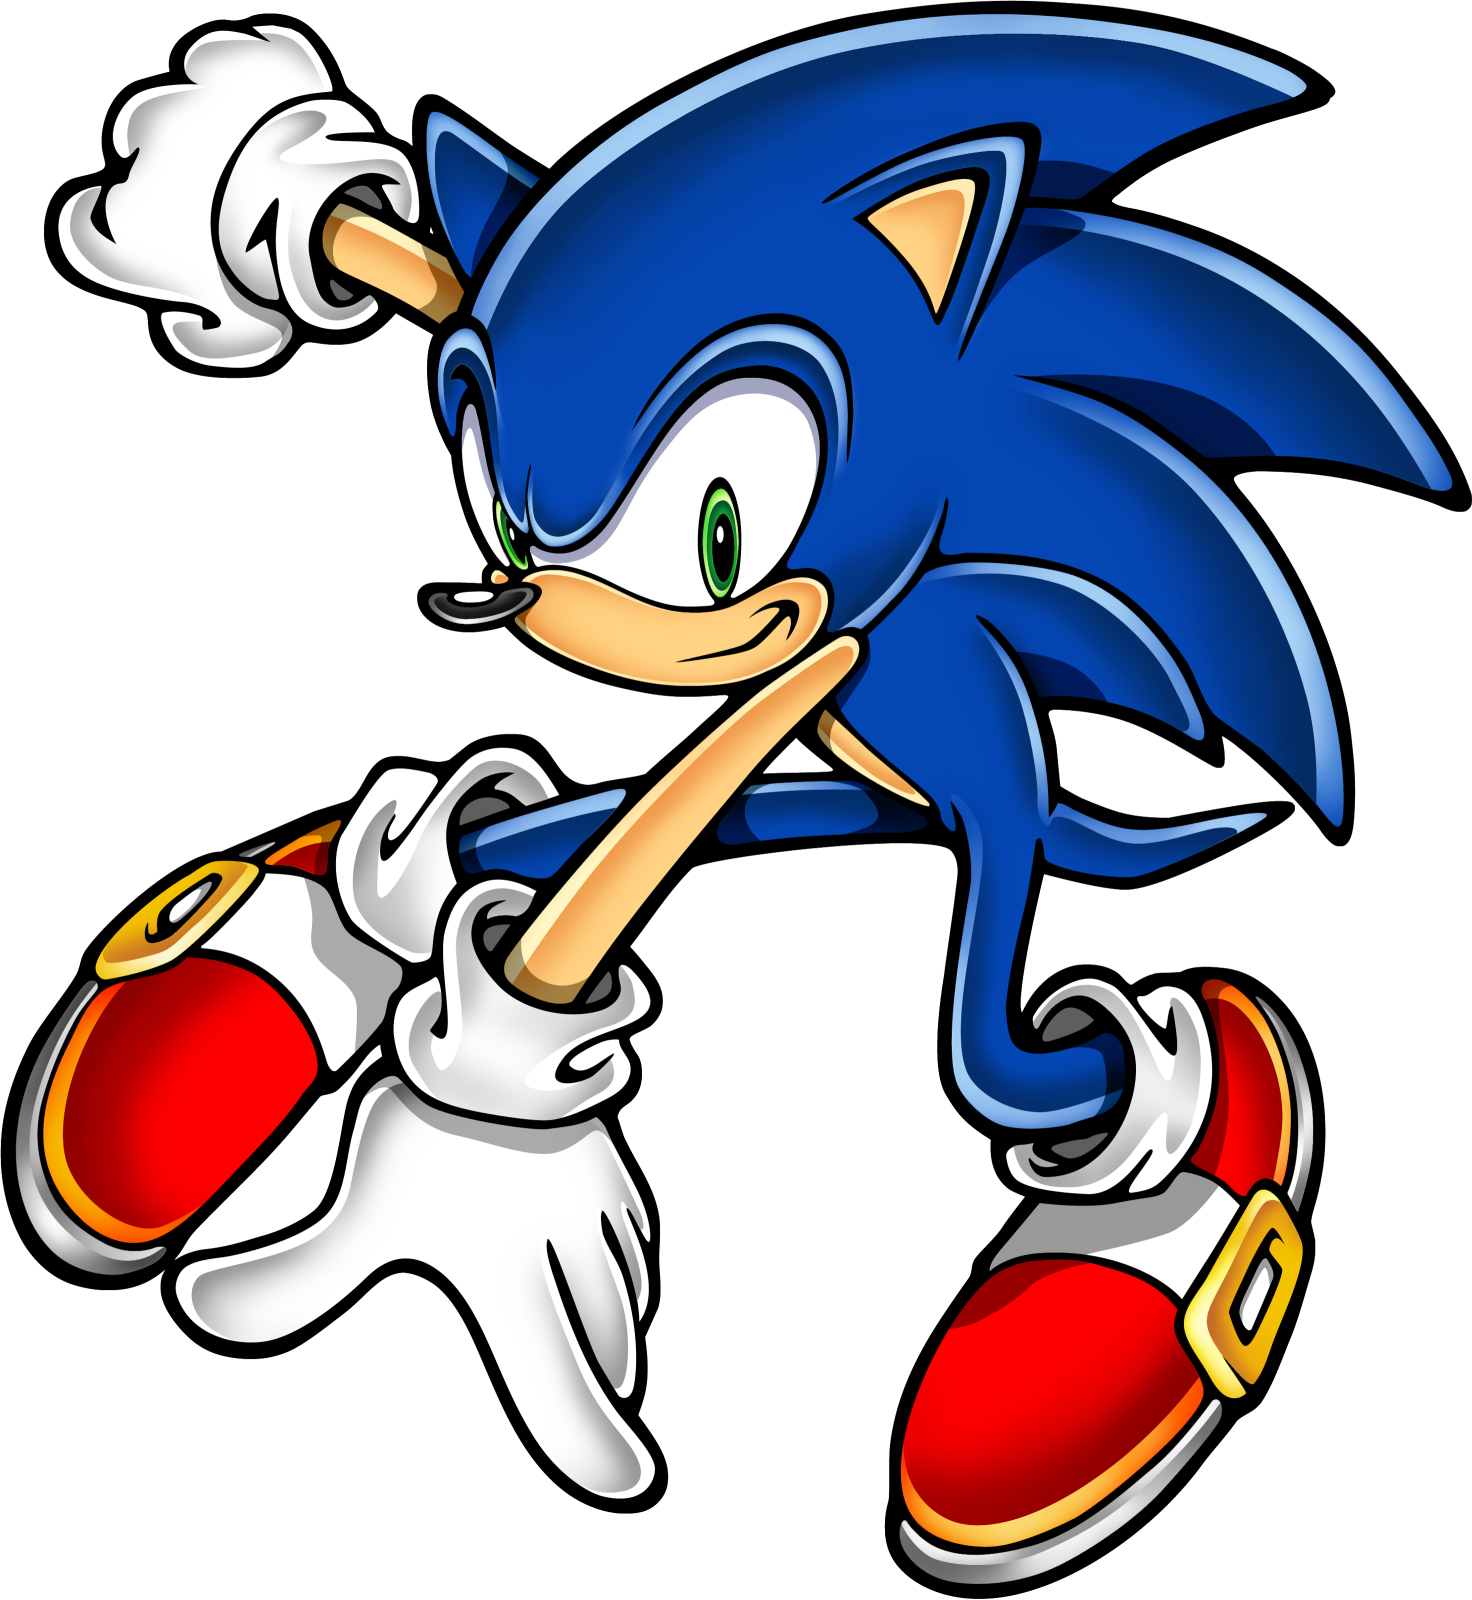 Sonic The Hedgehog clipart #14